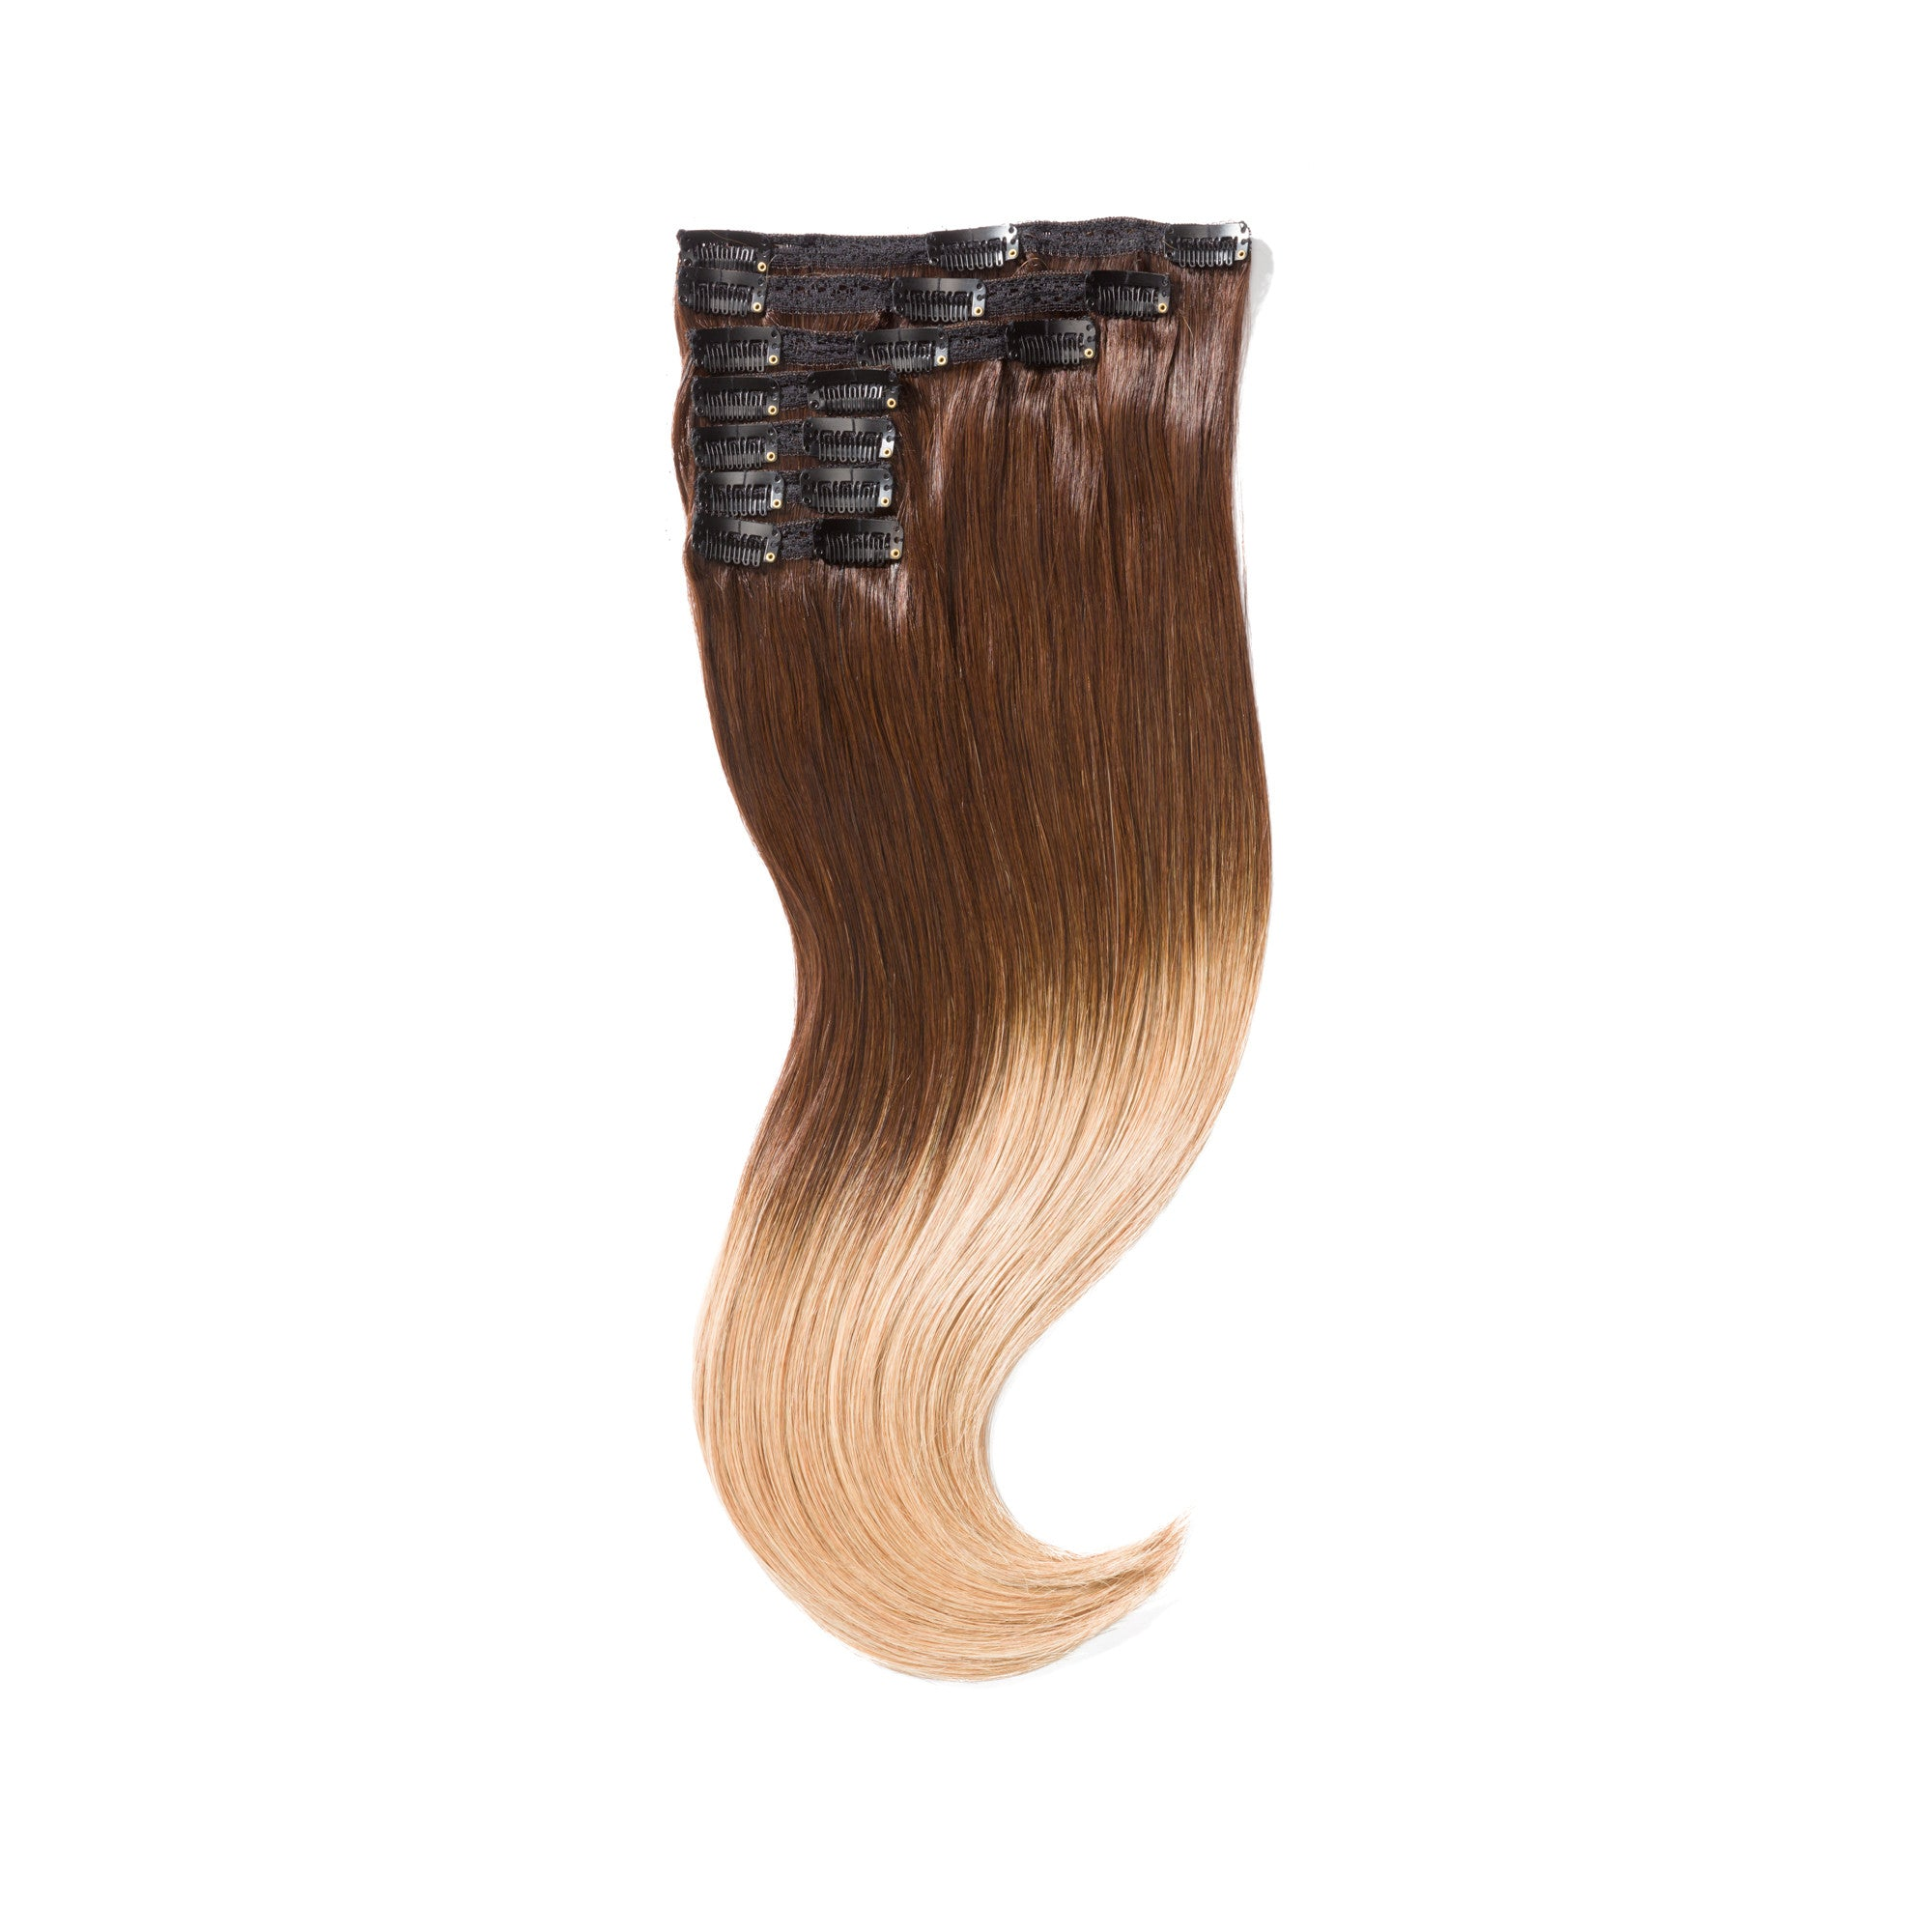 Kumari Royale 160g 20 Ombre Chocolate Brown Caramel Blonde 2 27